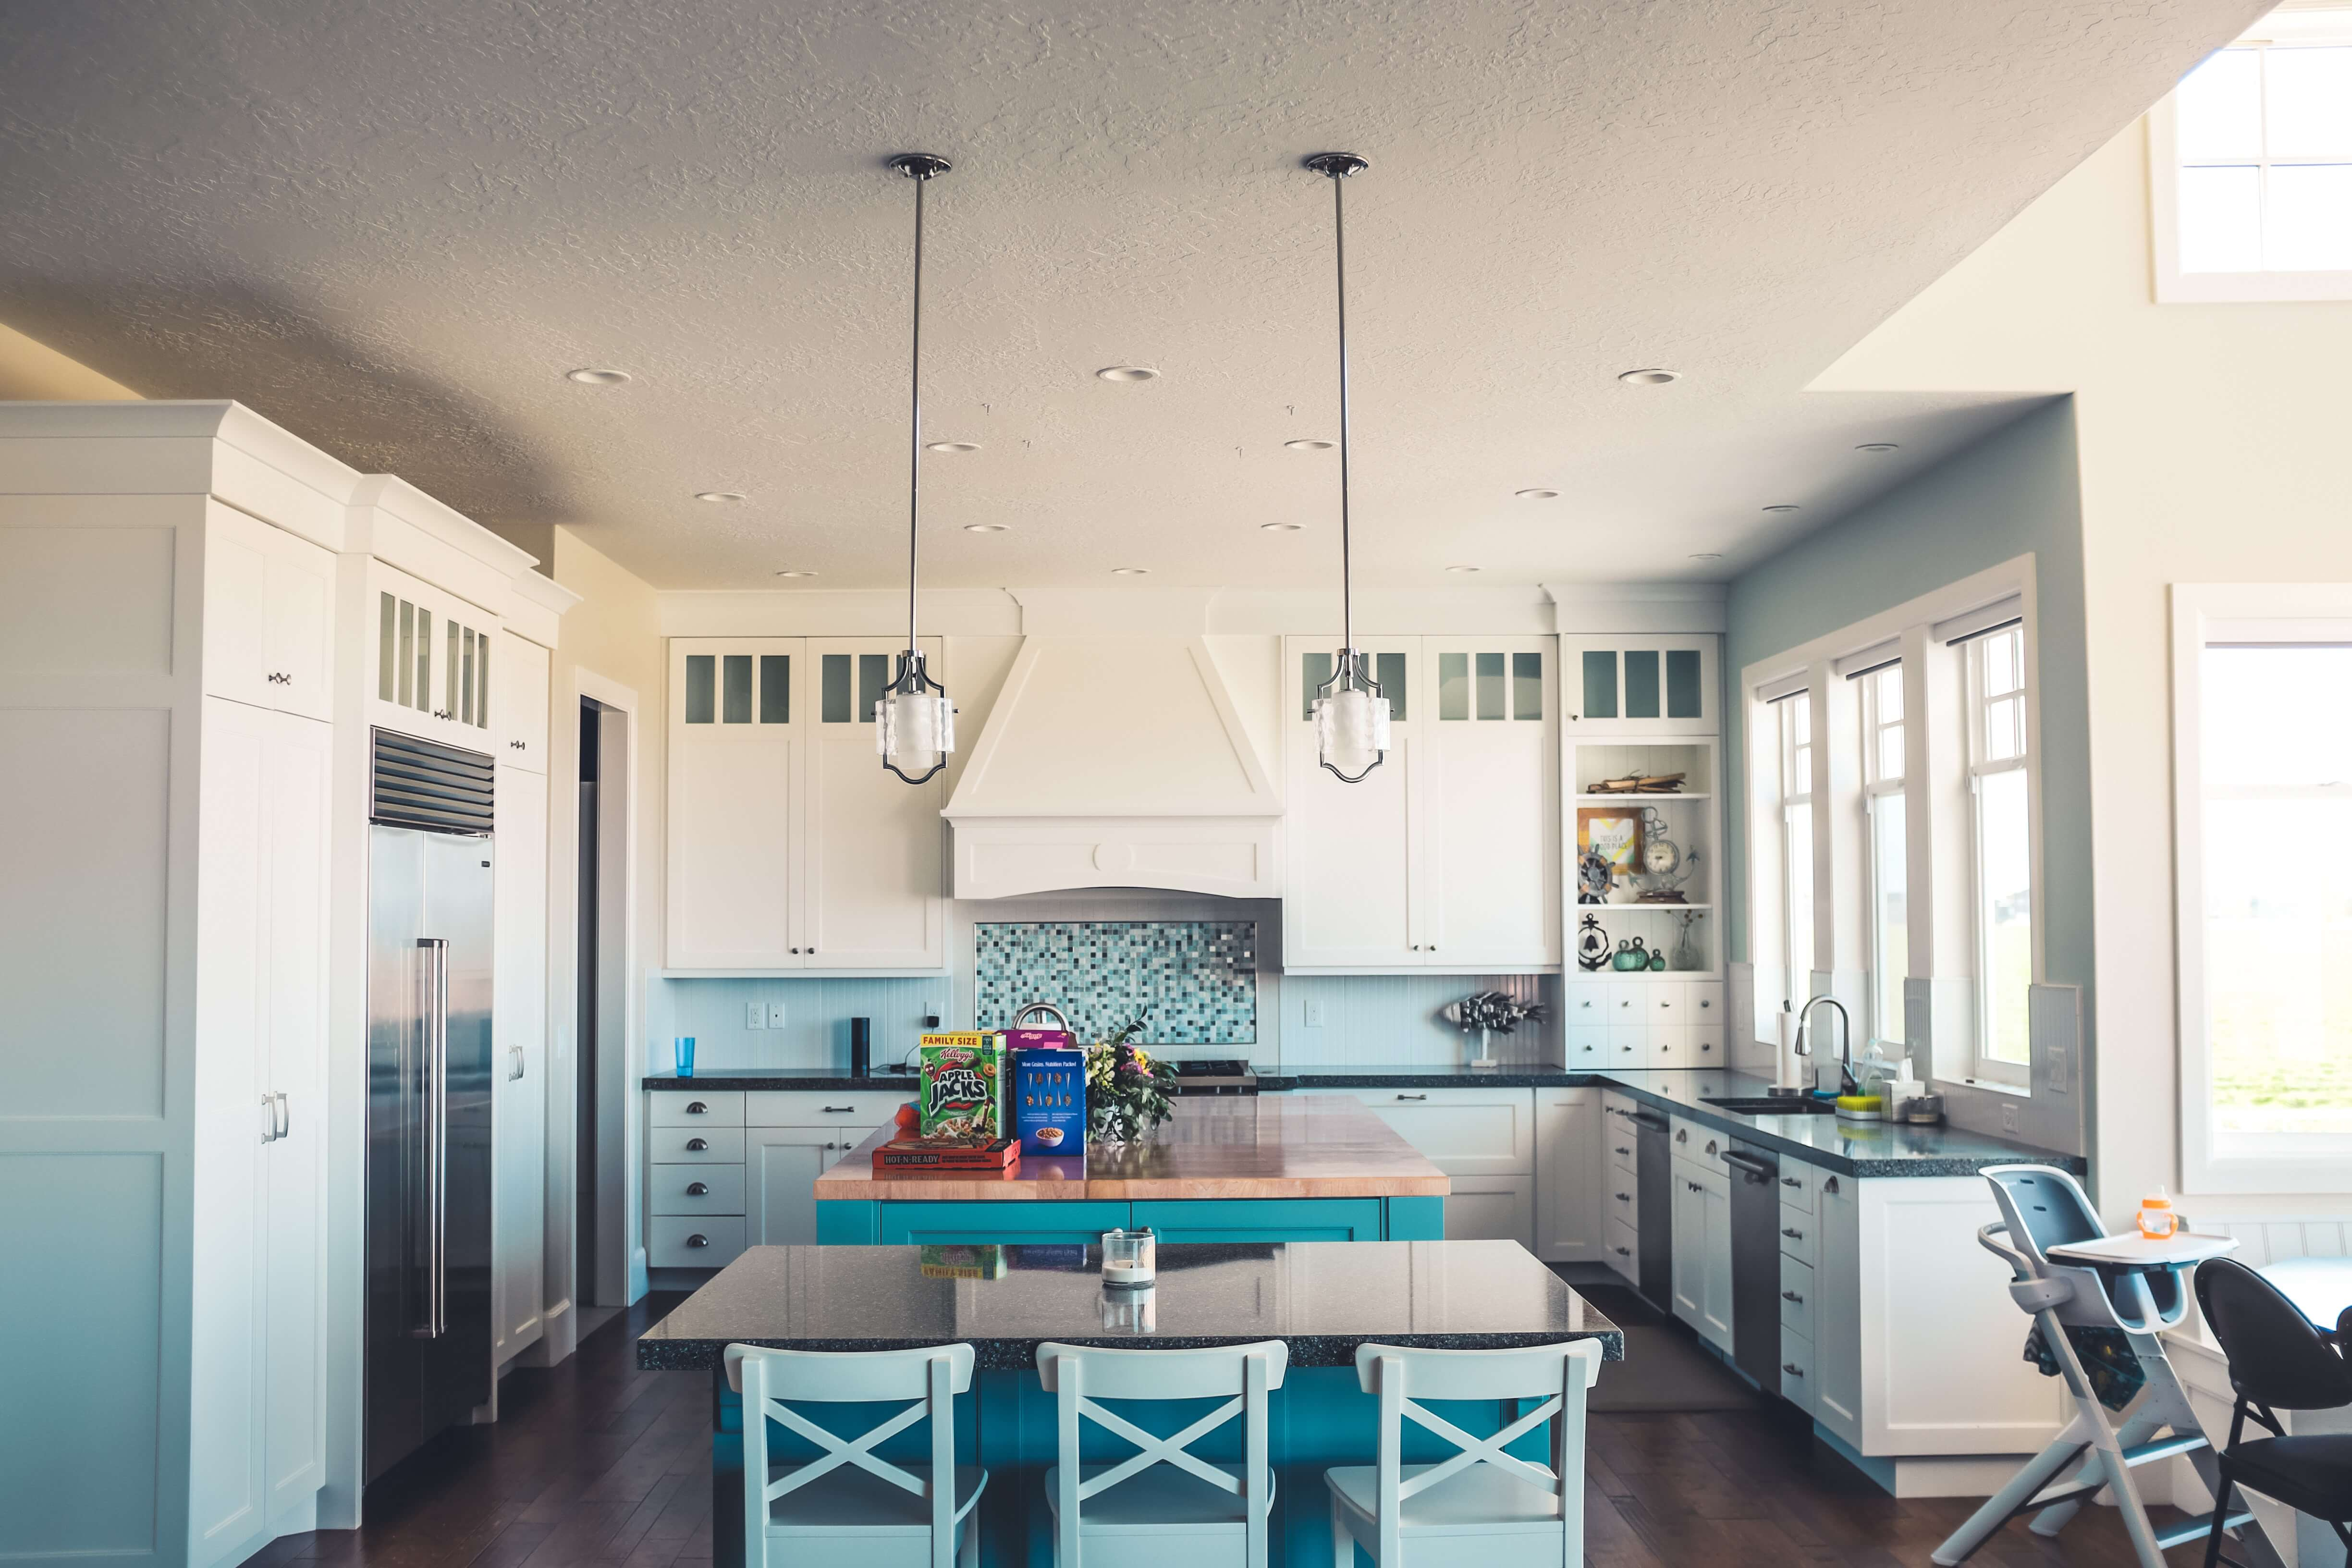 Refinish Instead Of Paint Your Kitchen Cabinets Woodworks Refurbishing